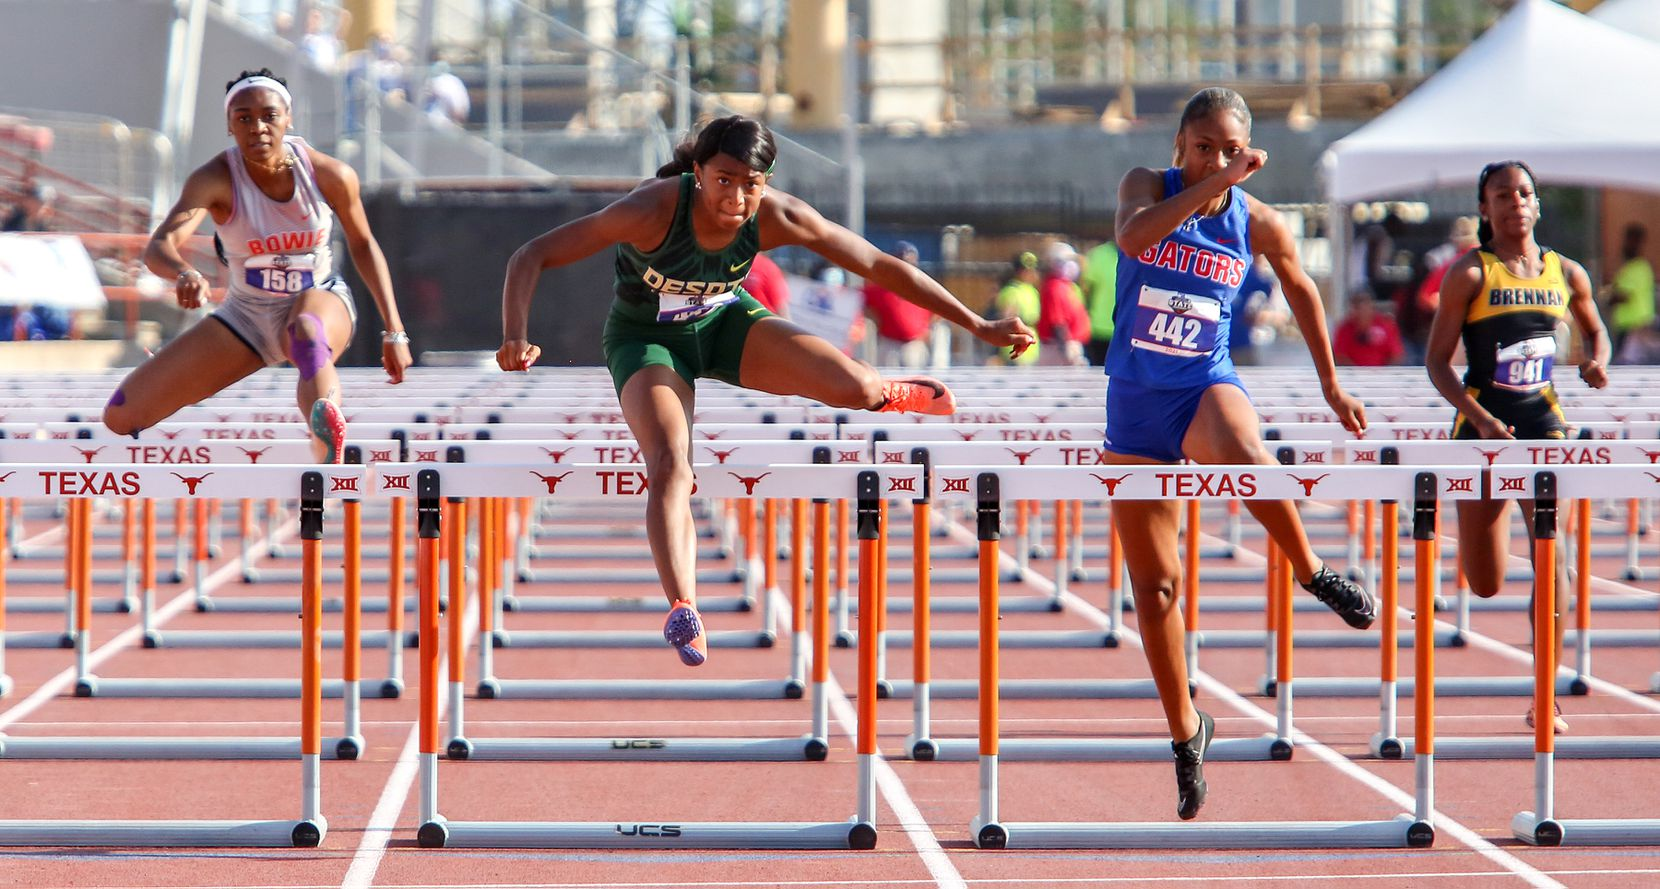 DeSoto's Jalaysi'ya Smith jumps over the last hurdle in the 6A Girls 100 meter hurdles during the UIL state track meet at the Mike A. Myers Stadium, at the University of Texas on May 8, 2021 in Austin, Texas.